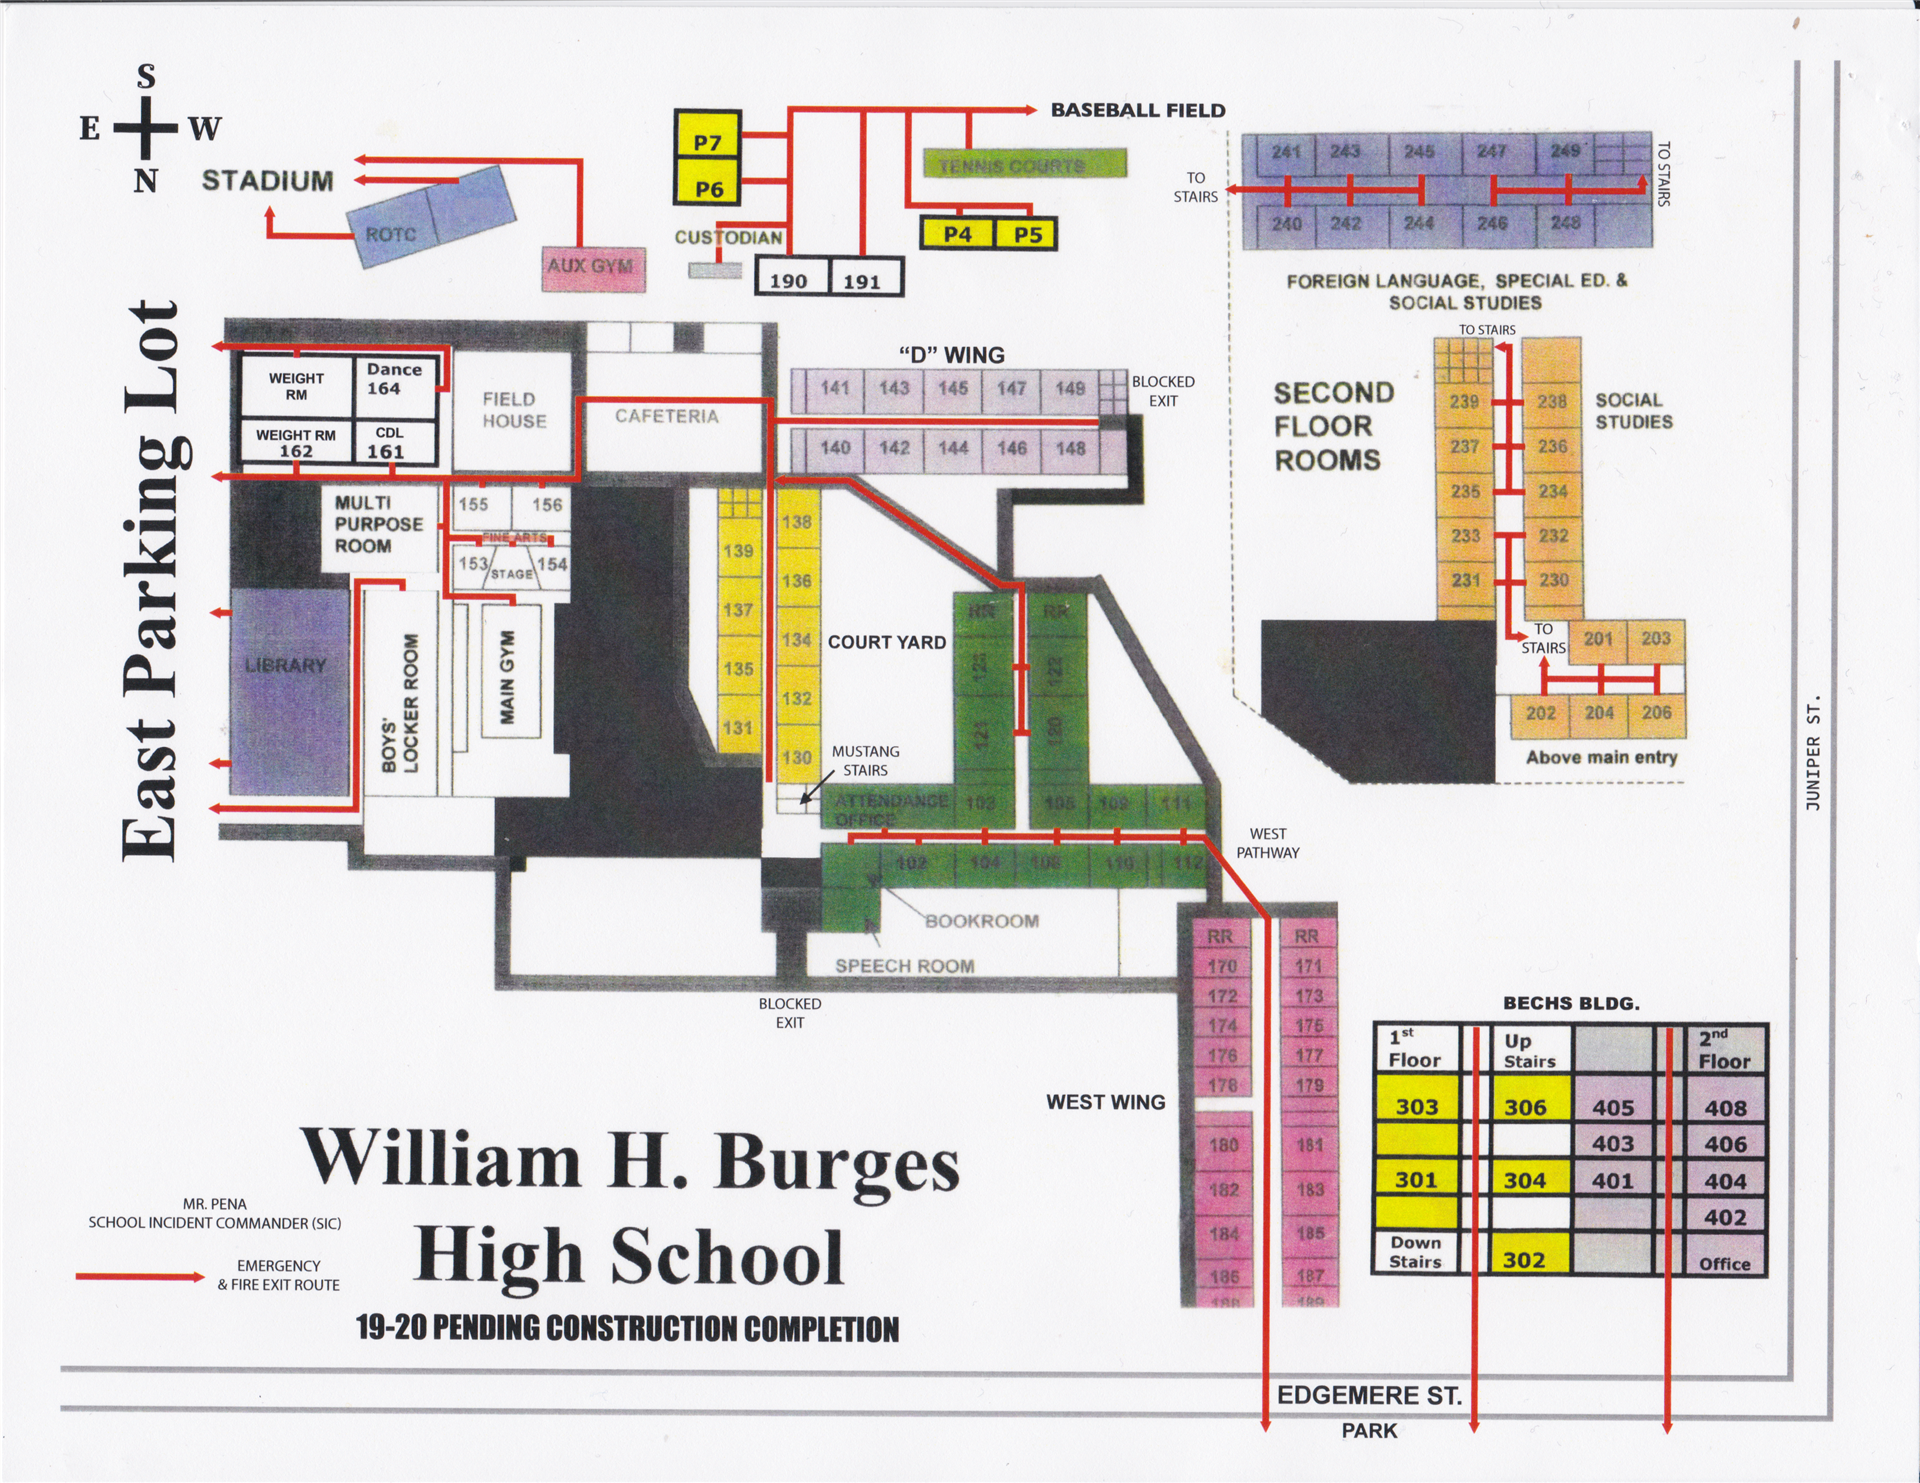 Campus Map (w/ Emergency Exit Routes)